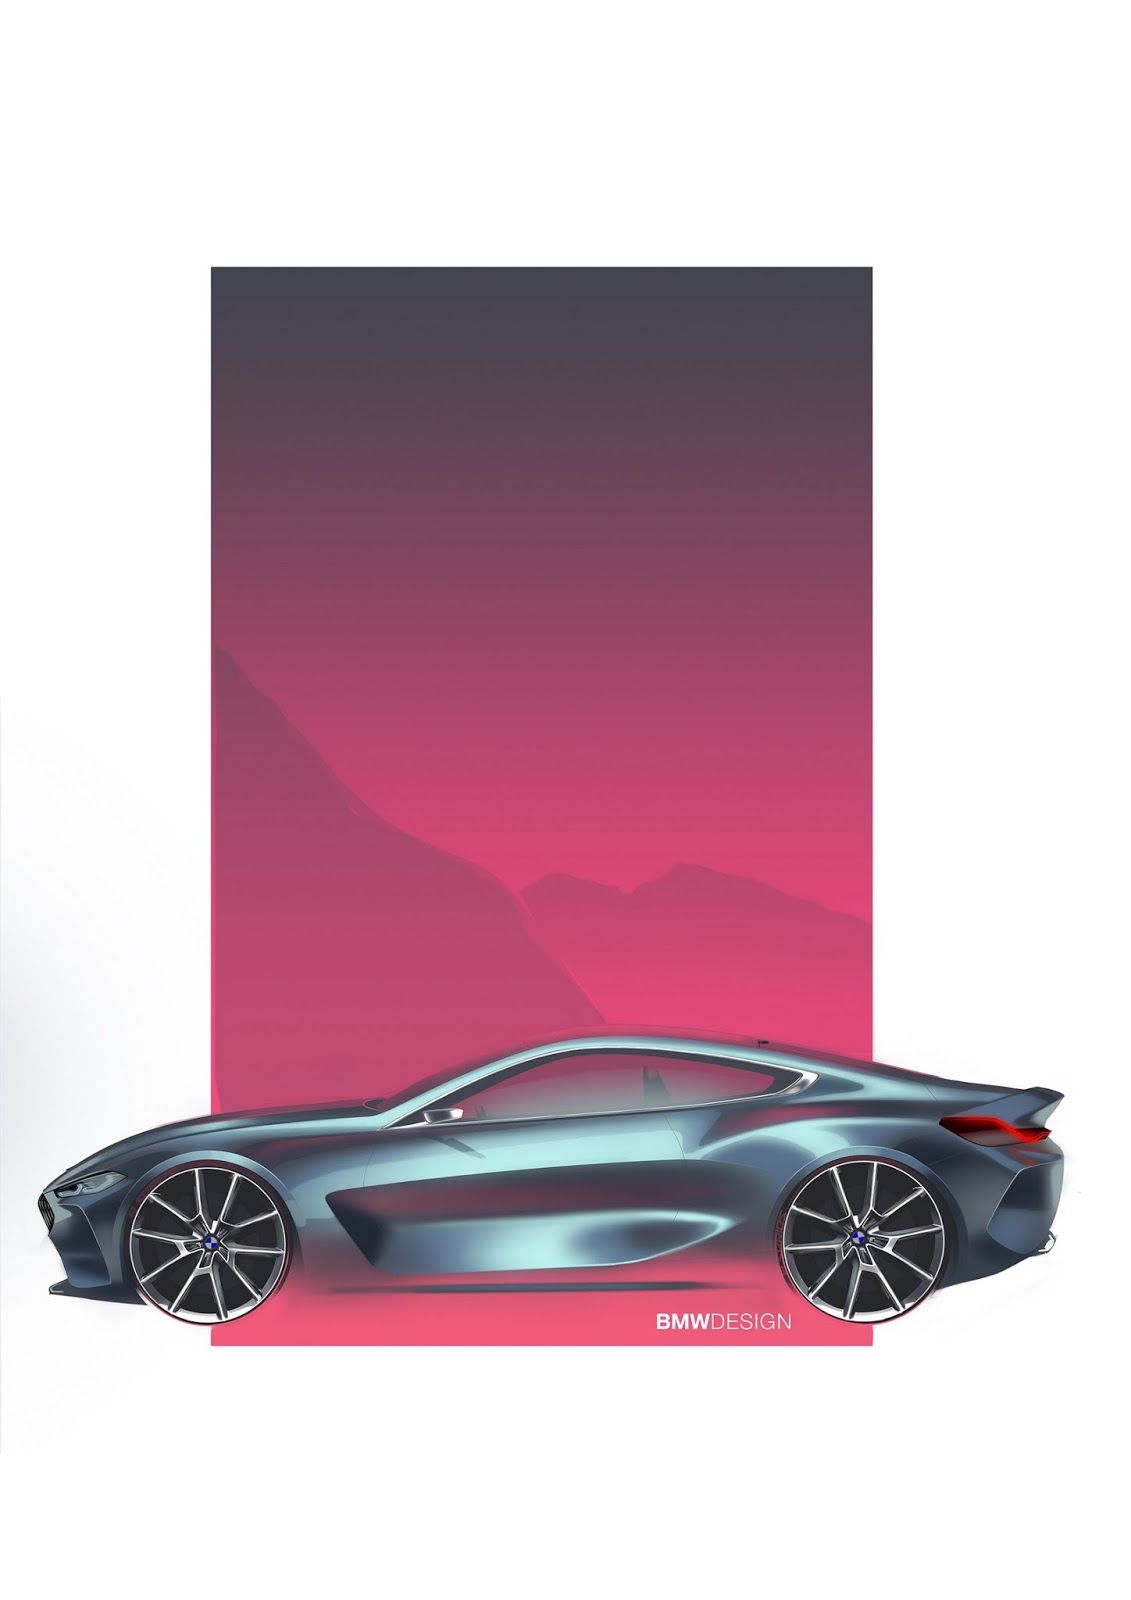 New bmw 8 series concept revealed coming in 2018 72 pics new bmw 8 series concept revealed coming in 2018 72 pics videos vanachro Images